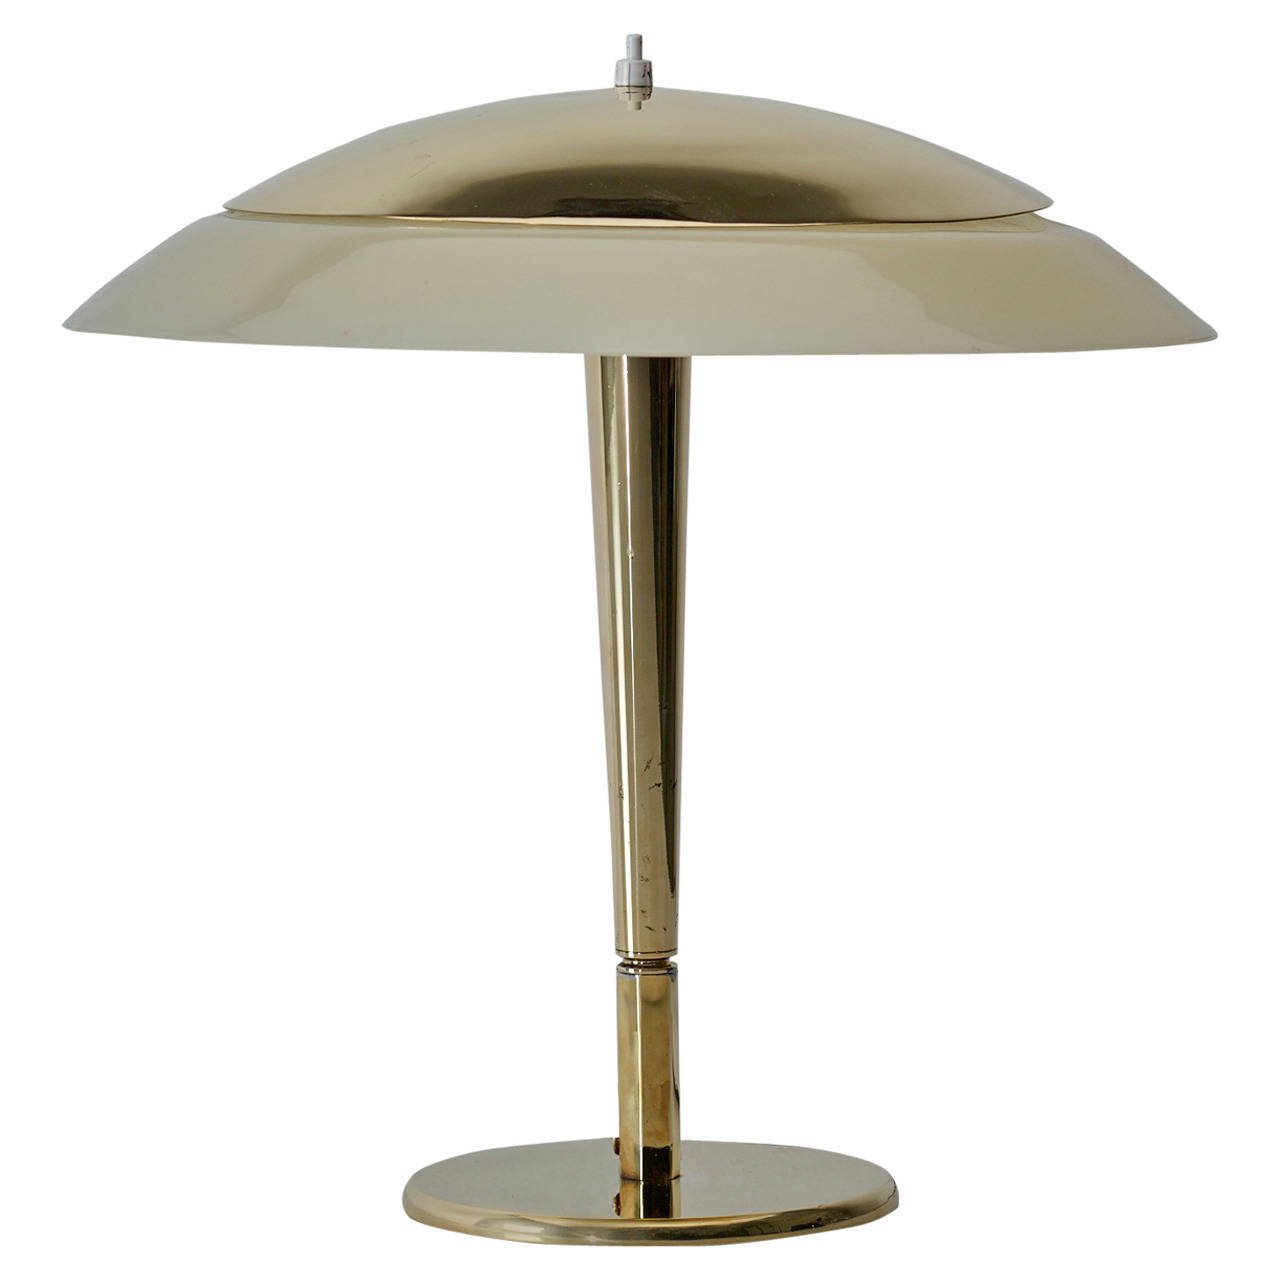 Paavo Tynell Model 5061 Lamp, Taito Oy, 1950s - The Exchange Int